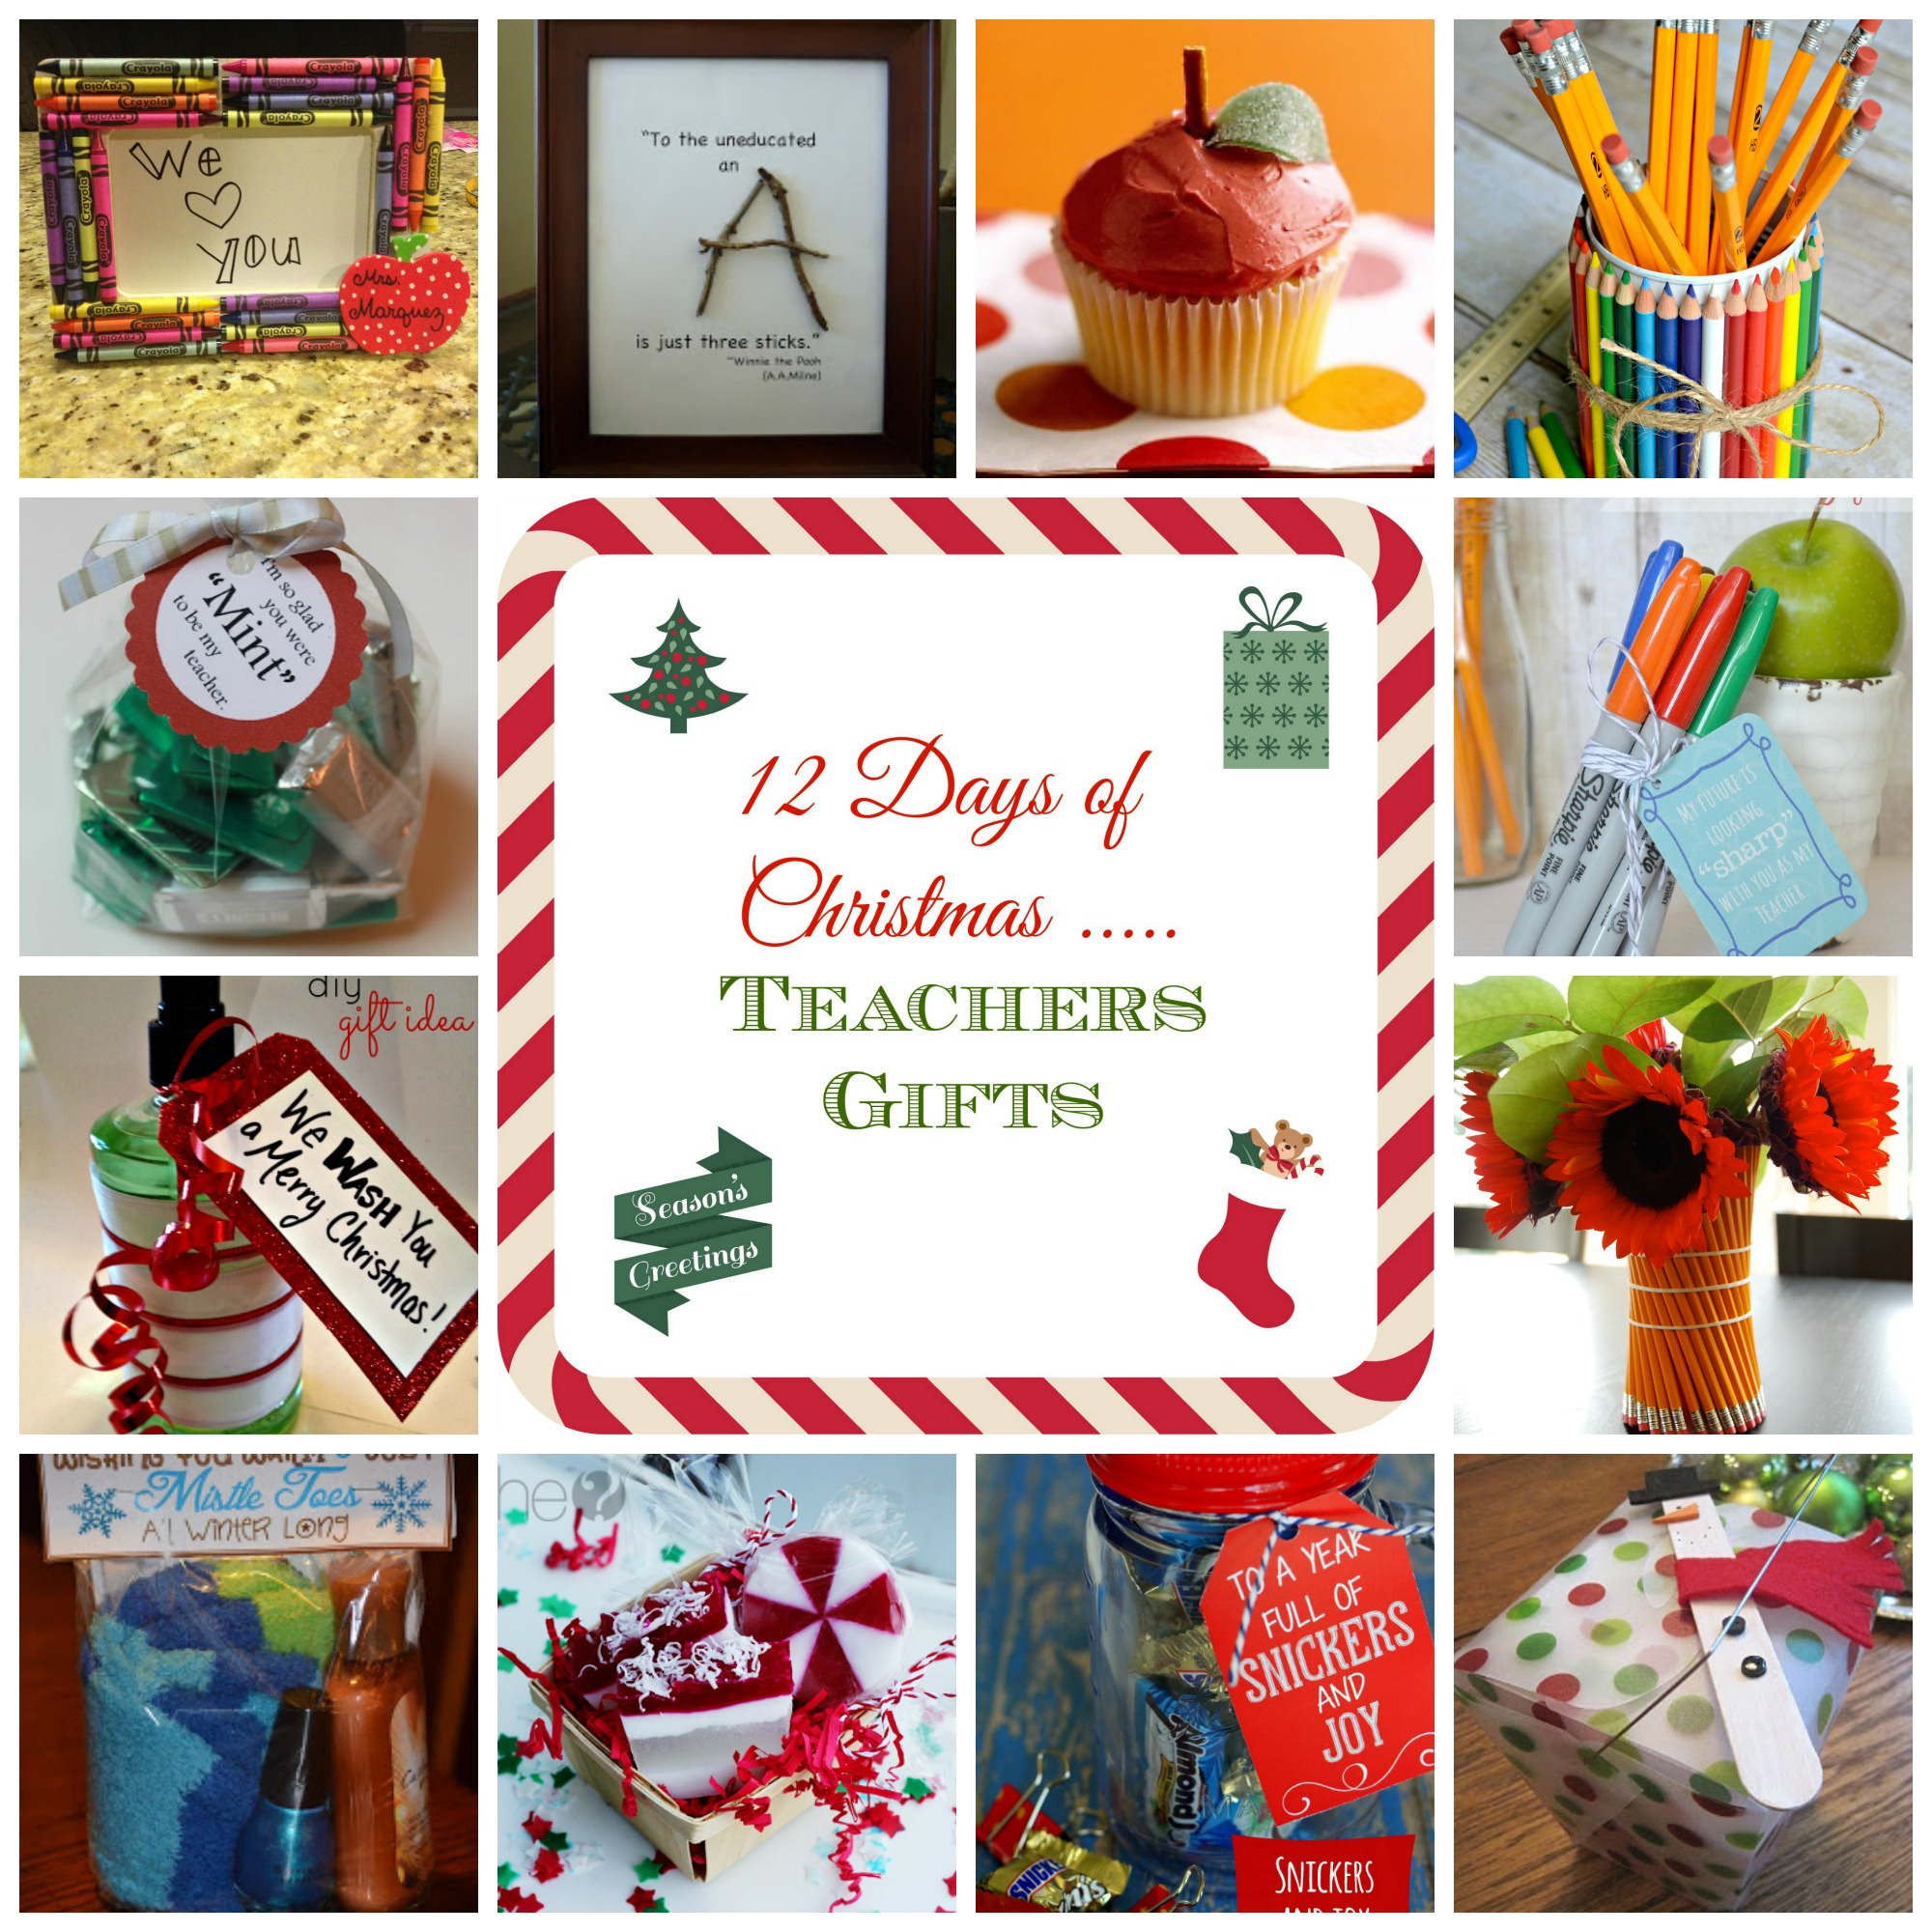 12 Days of Christmas - Teacher Gift Ideas - donnahup.com